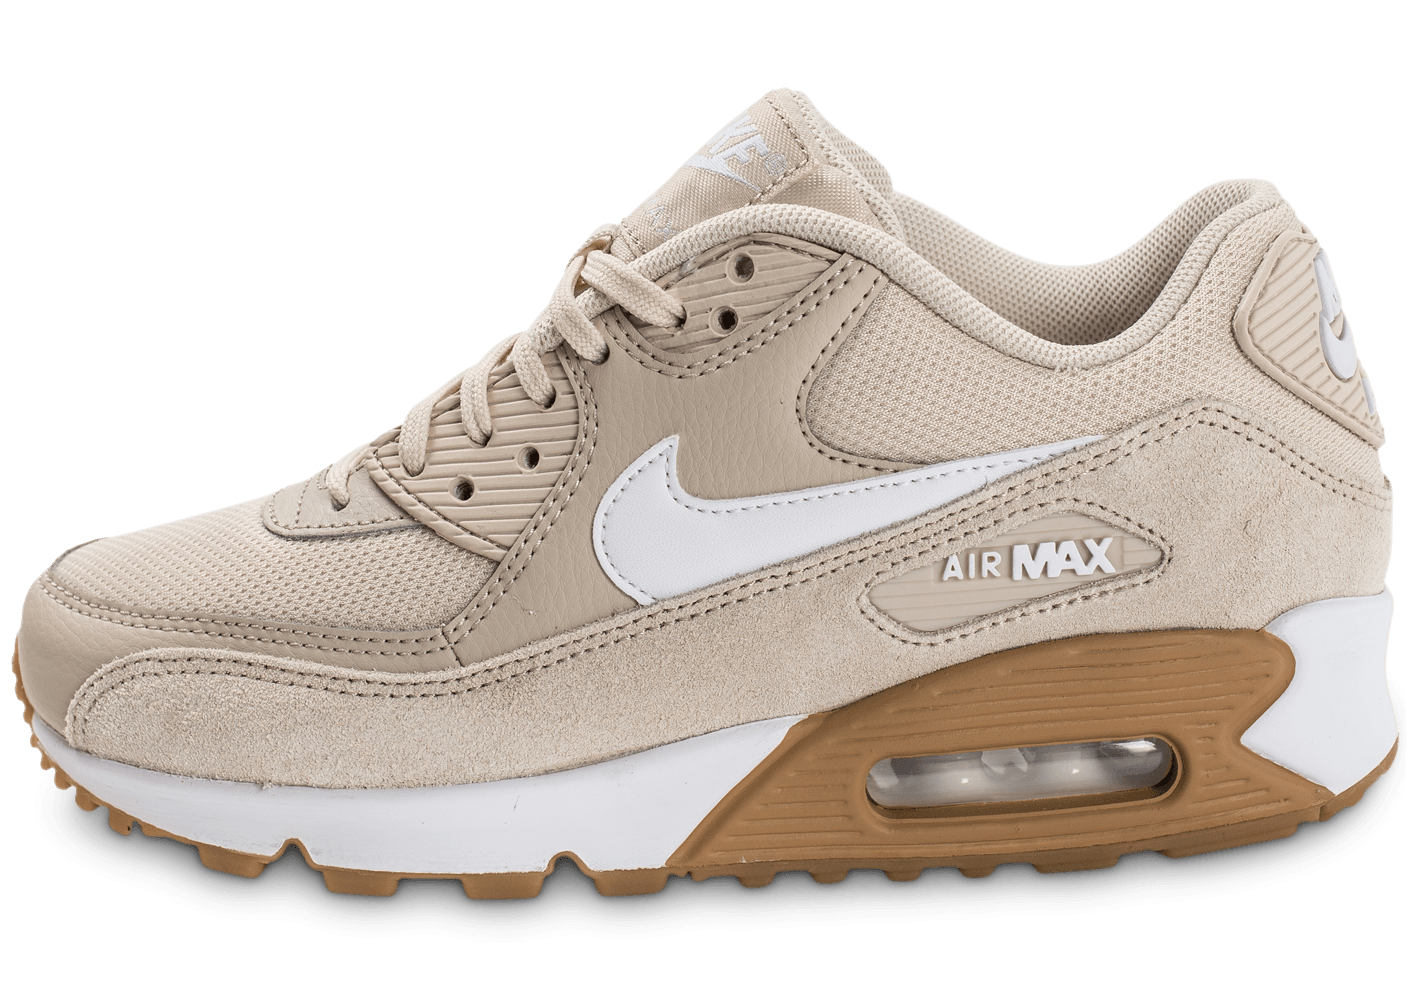 cheaper 8cd34 bb61a Nike Air Max 90 W beige - Chaussures Baskets femme - Chauspo